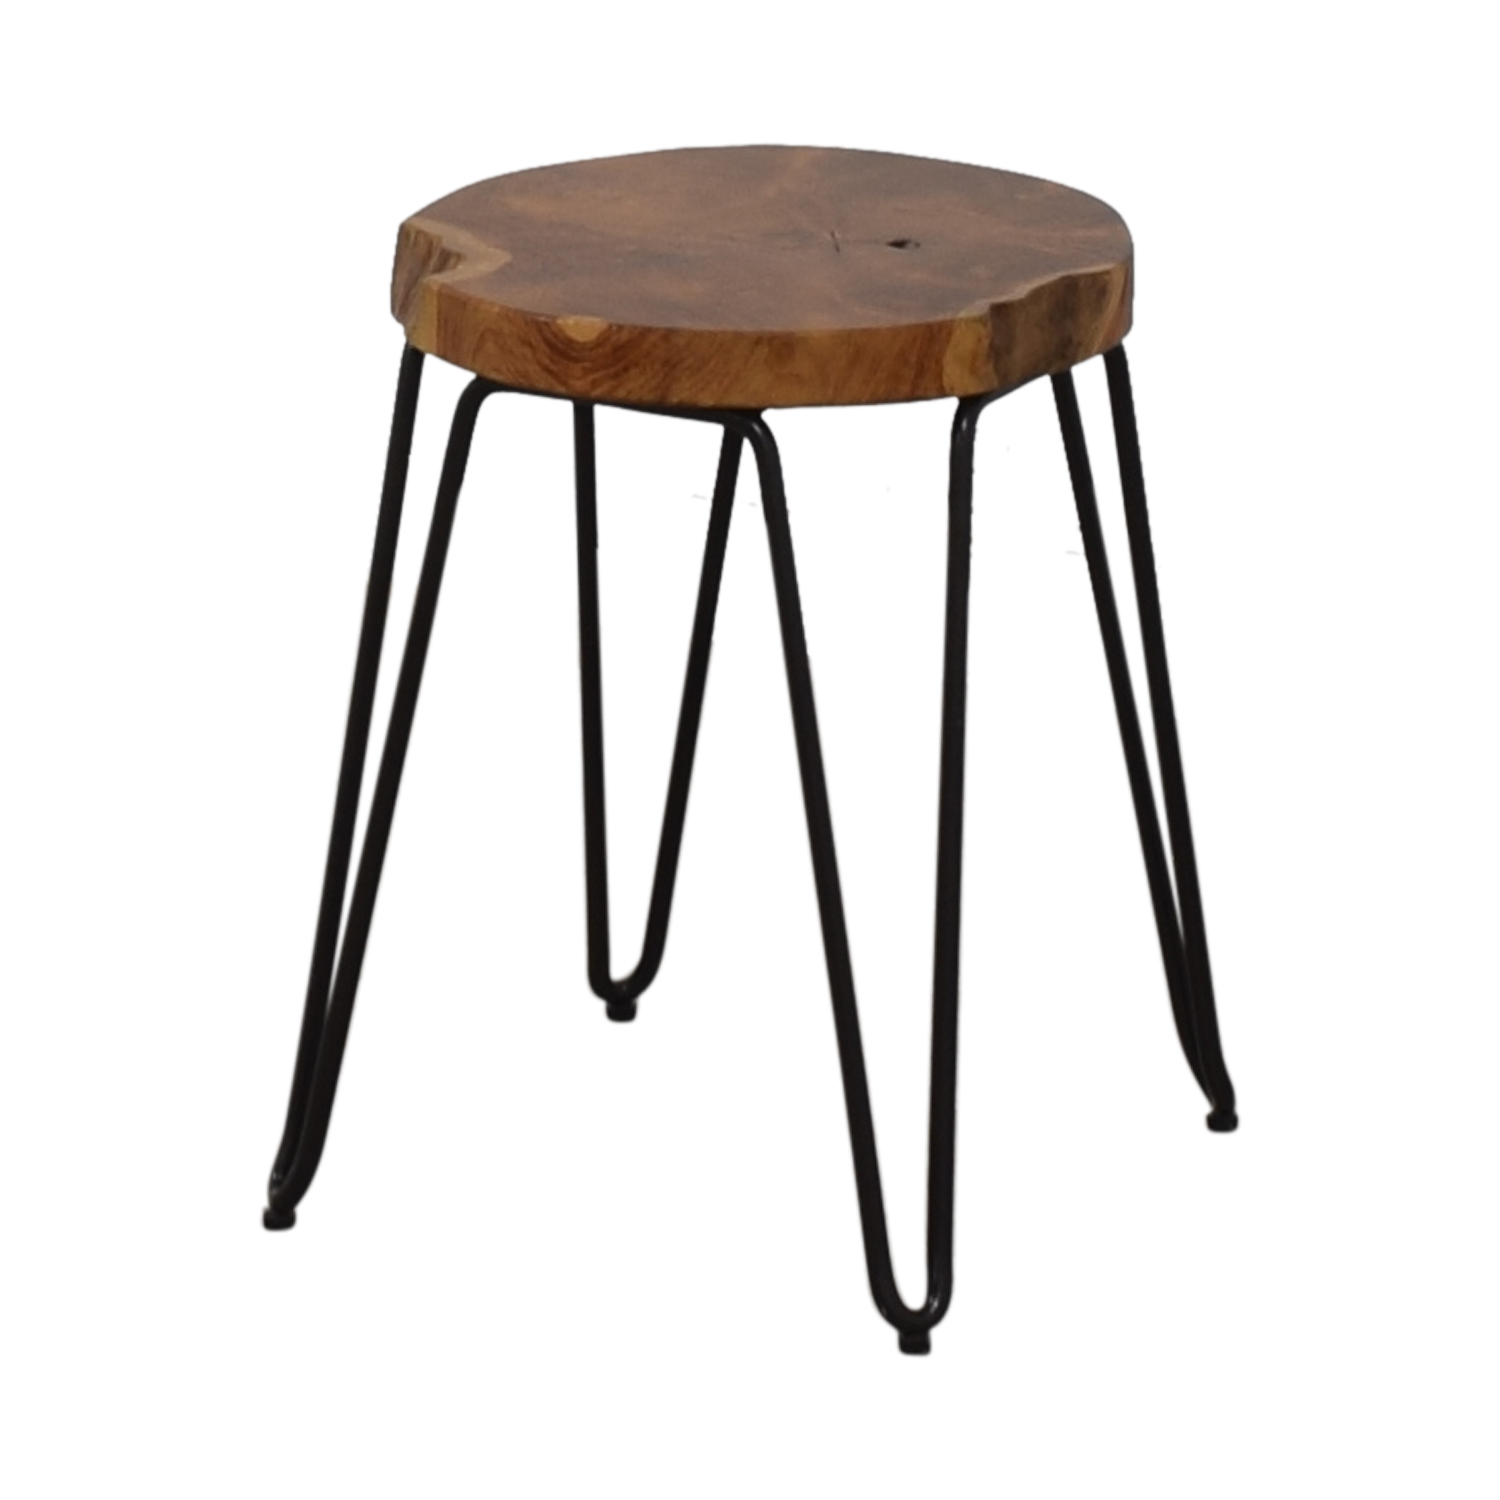 Crate & Barrel Crate & Barrel Distressed Wood Stool coupon